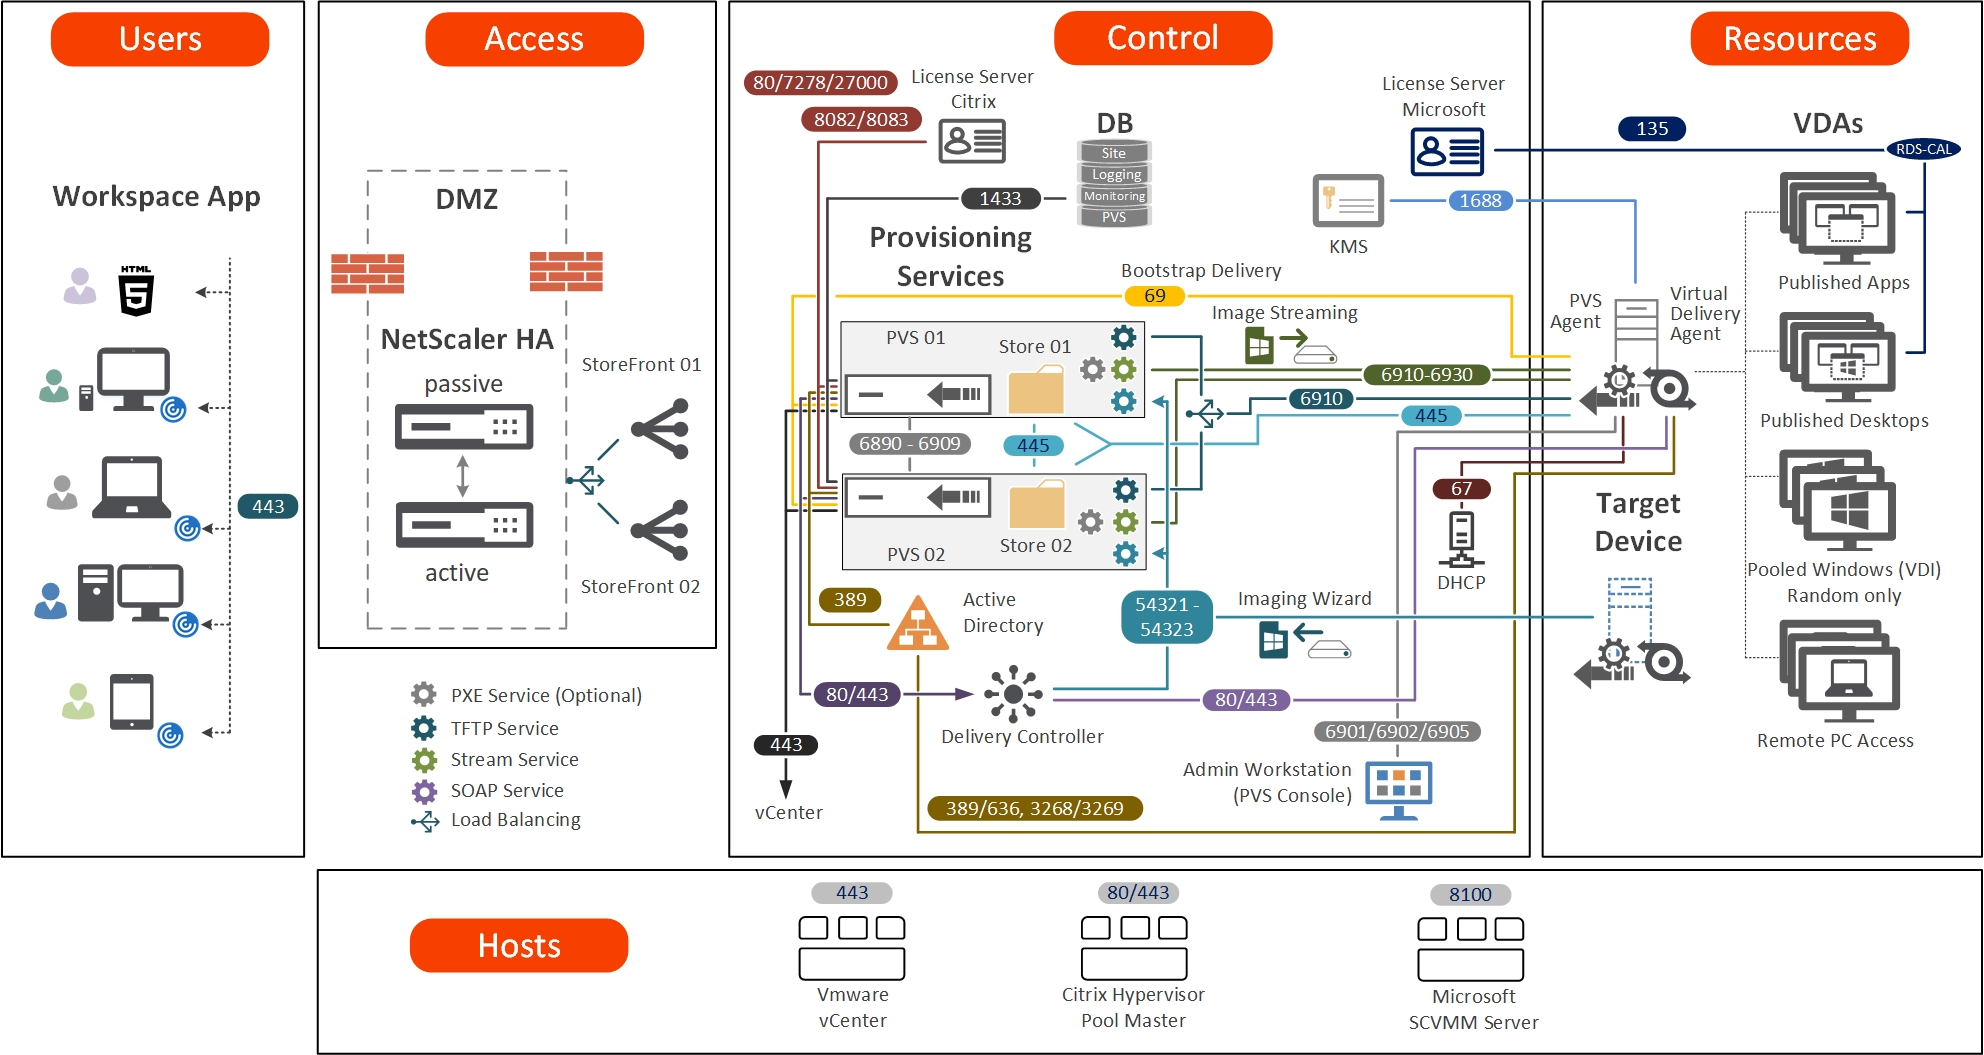 Citrix Provisioning Services - Architecture Diagram and Communication Ports